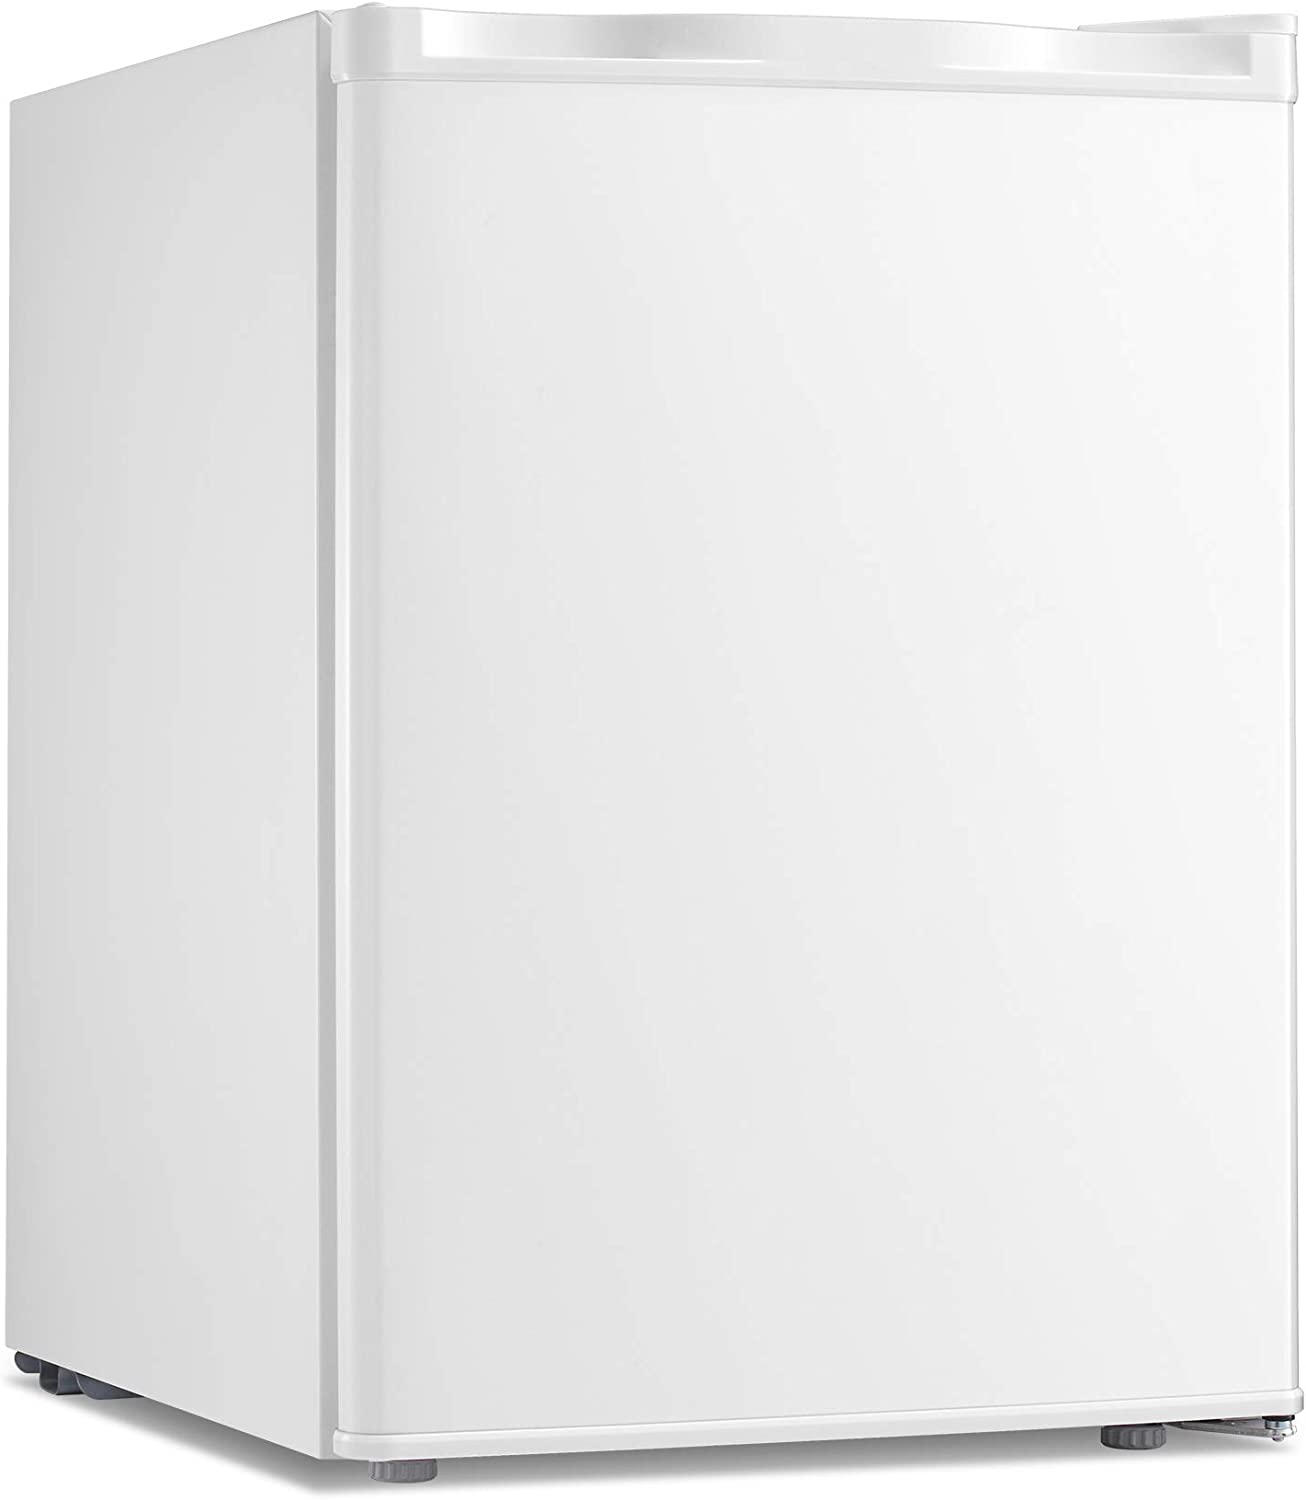 Antarctic Star Compact Chest Upright Freezer Single Door Reversible Stainless Steel Door, Compact Adjustable Removable Shelves for Home Office, 2.1 cu.White